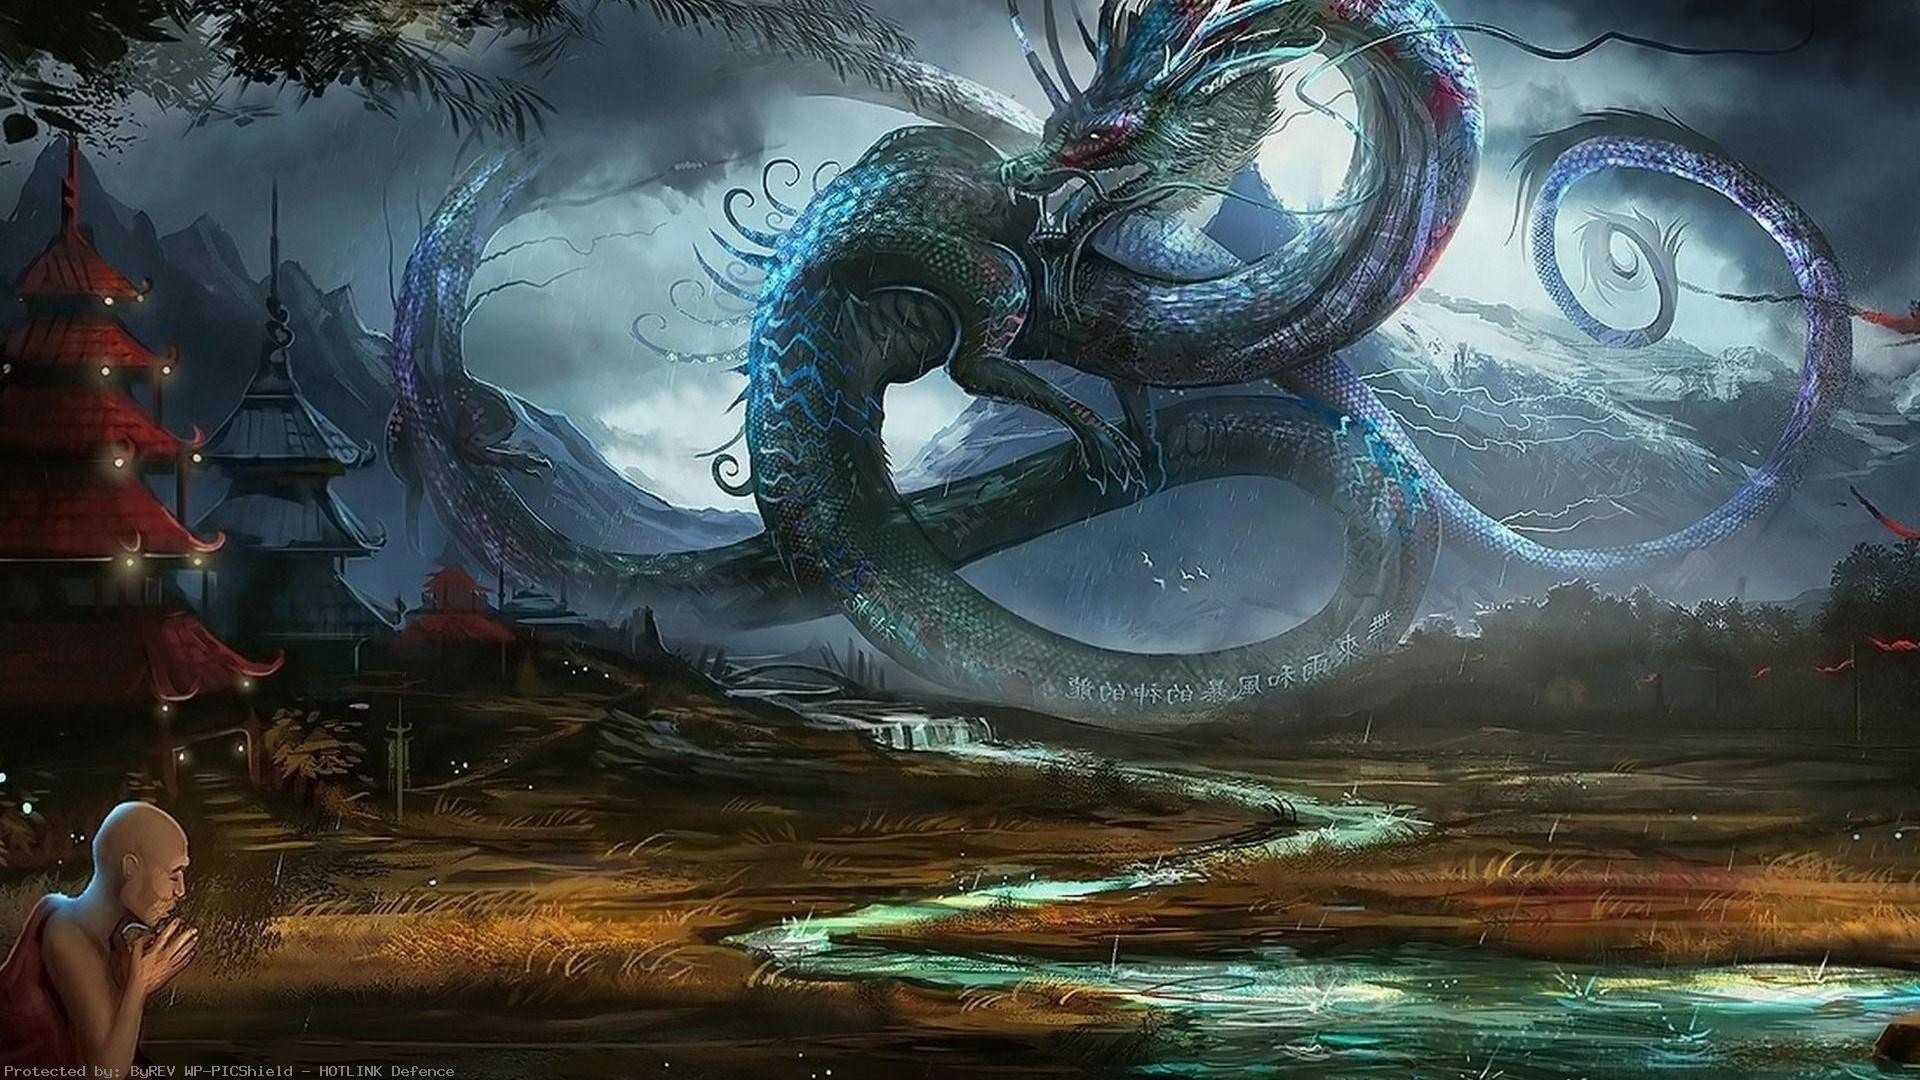 For-Chinese-Dragon-3d-wallpaper-wp40010094